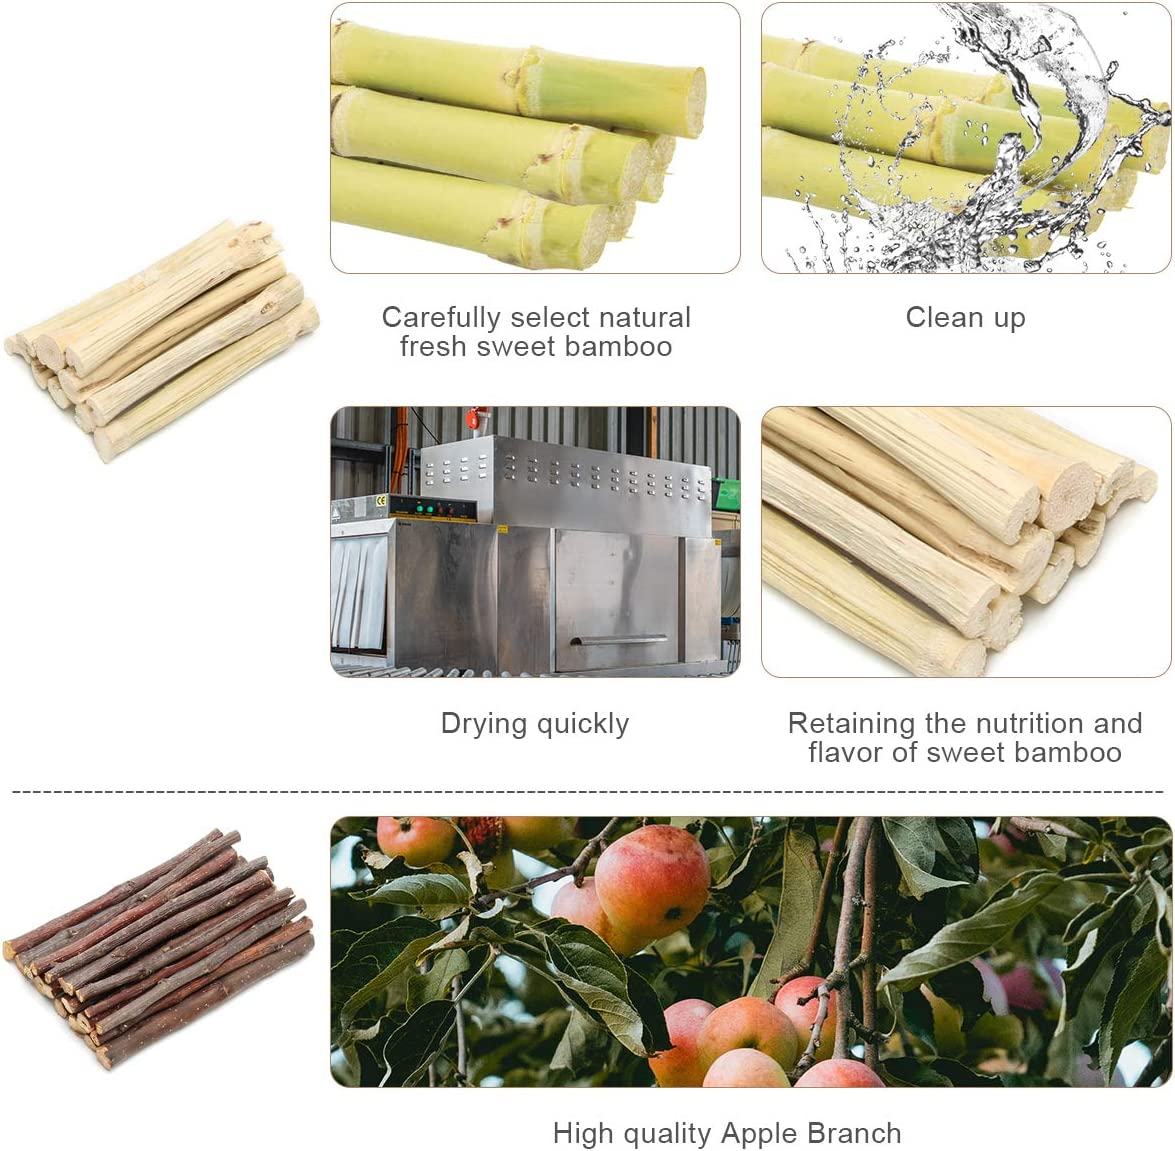 COITEK 200g Apple Sticks Pet Chew Toys All Natural Organic Apple Branches Guinea Pig Chew Molar Sticks Toys Pet Wooden Snacks for Rabbits Hamster Chinchilla Apple Branches 200g